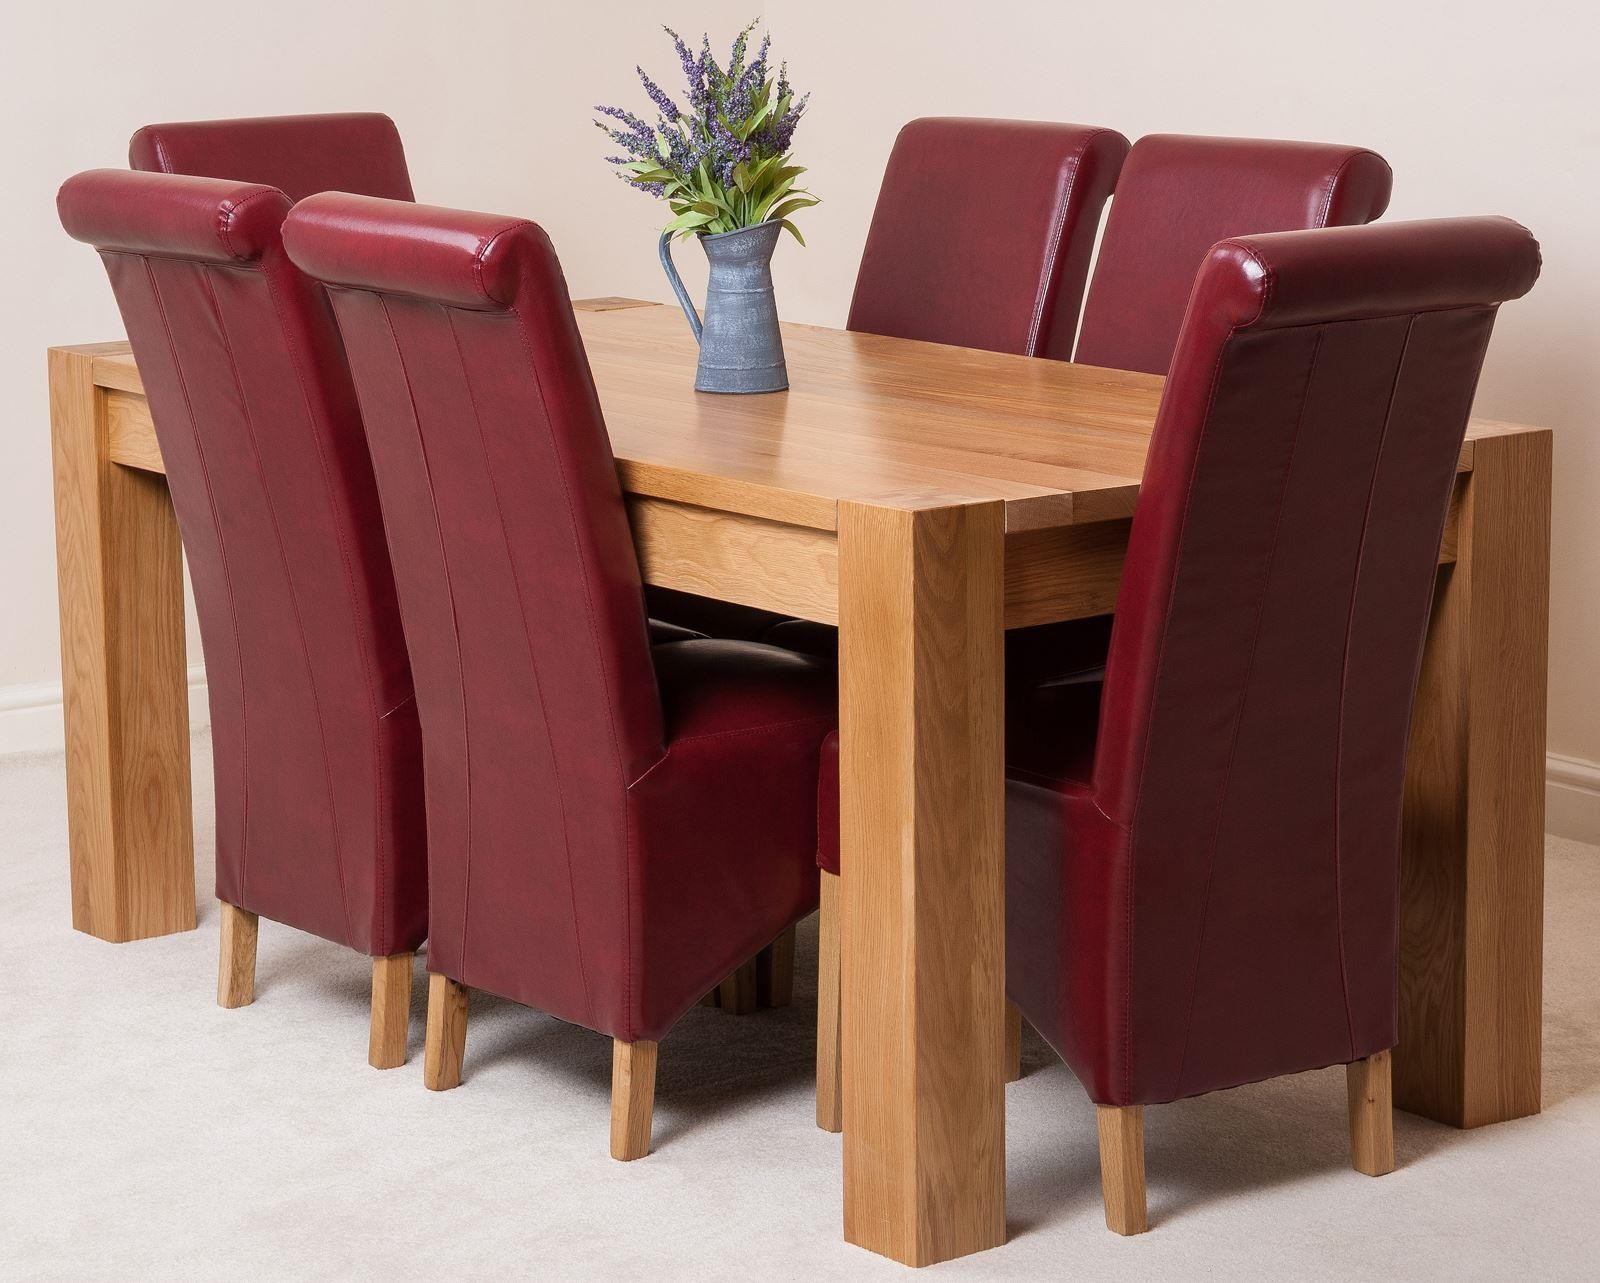 Red Leather Dining Room Chairs Kuba Oak Dining Table With 6 Ivory Lola Dining Chairs